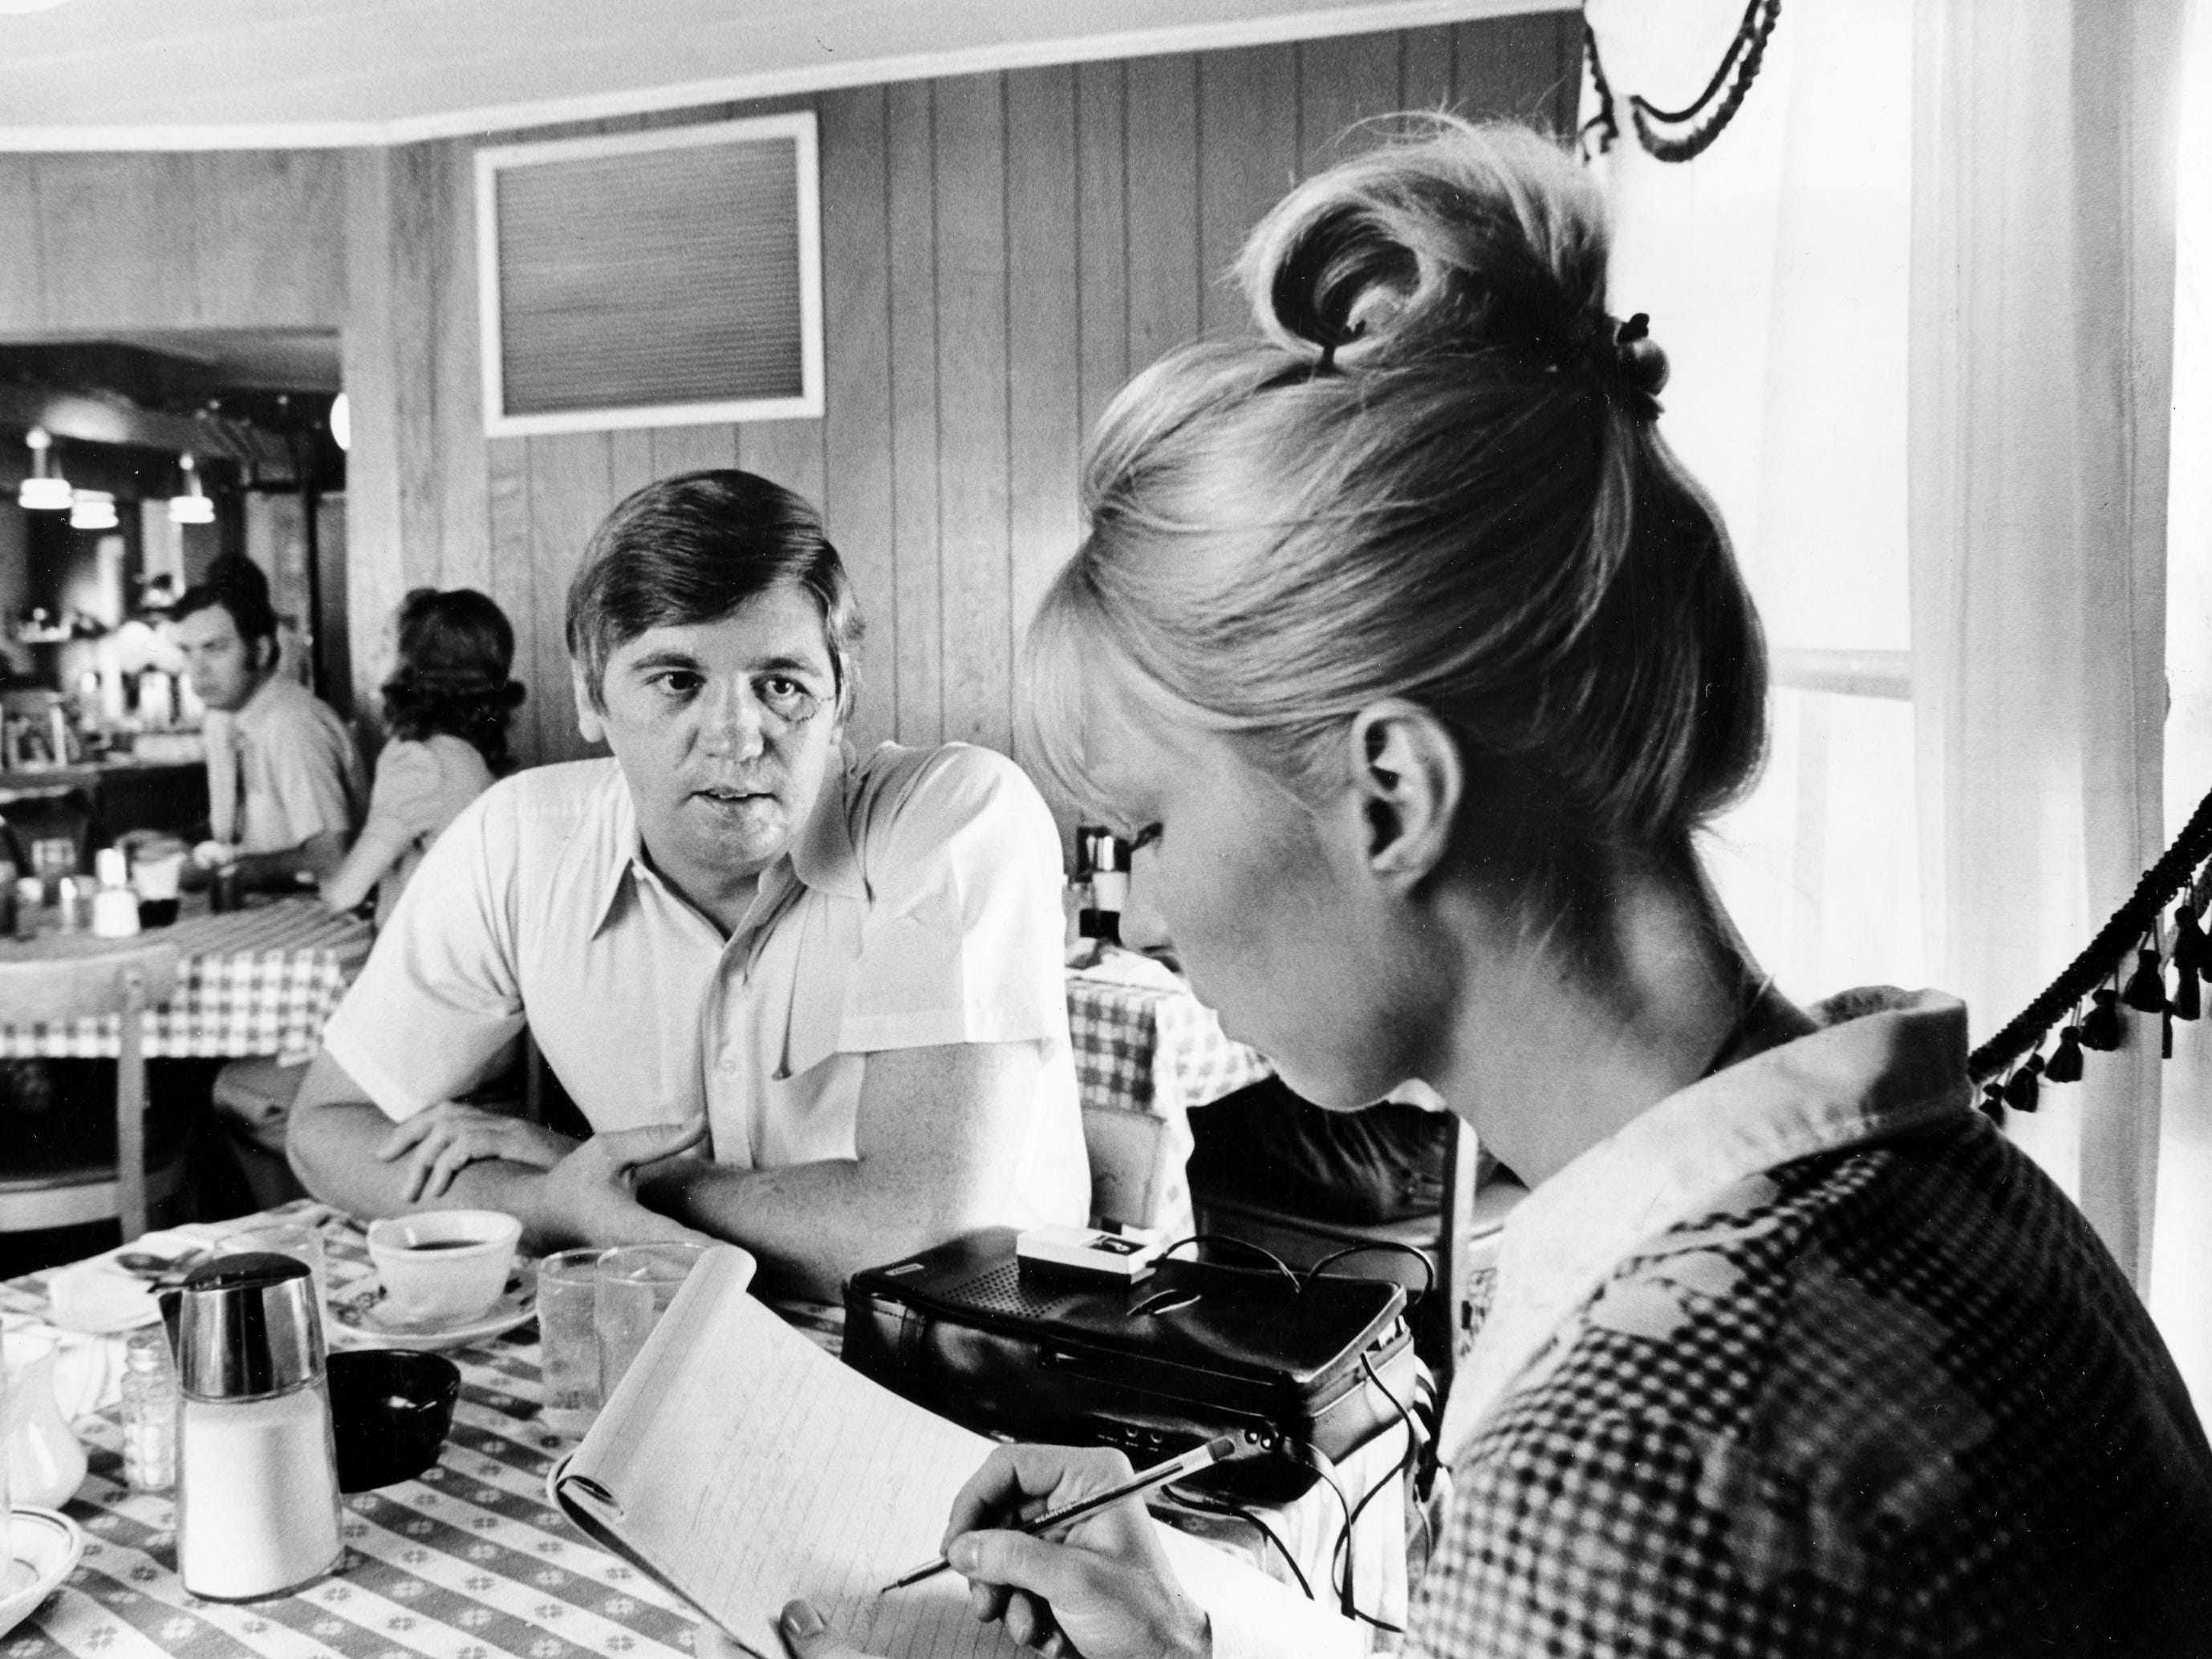 Former McNairy County Sheriff Buford Pusser, center, relaxes at the Old Home Restaurant and Motel in Adamsville, his hometown, on Aug. 1, 1973, as he is interviewed by Kathy Sawyer, a reporter for The Tennessean.